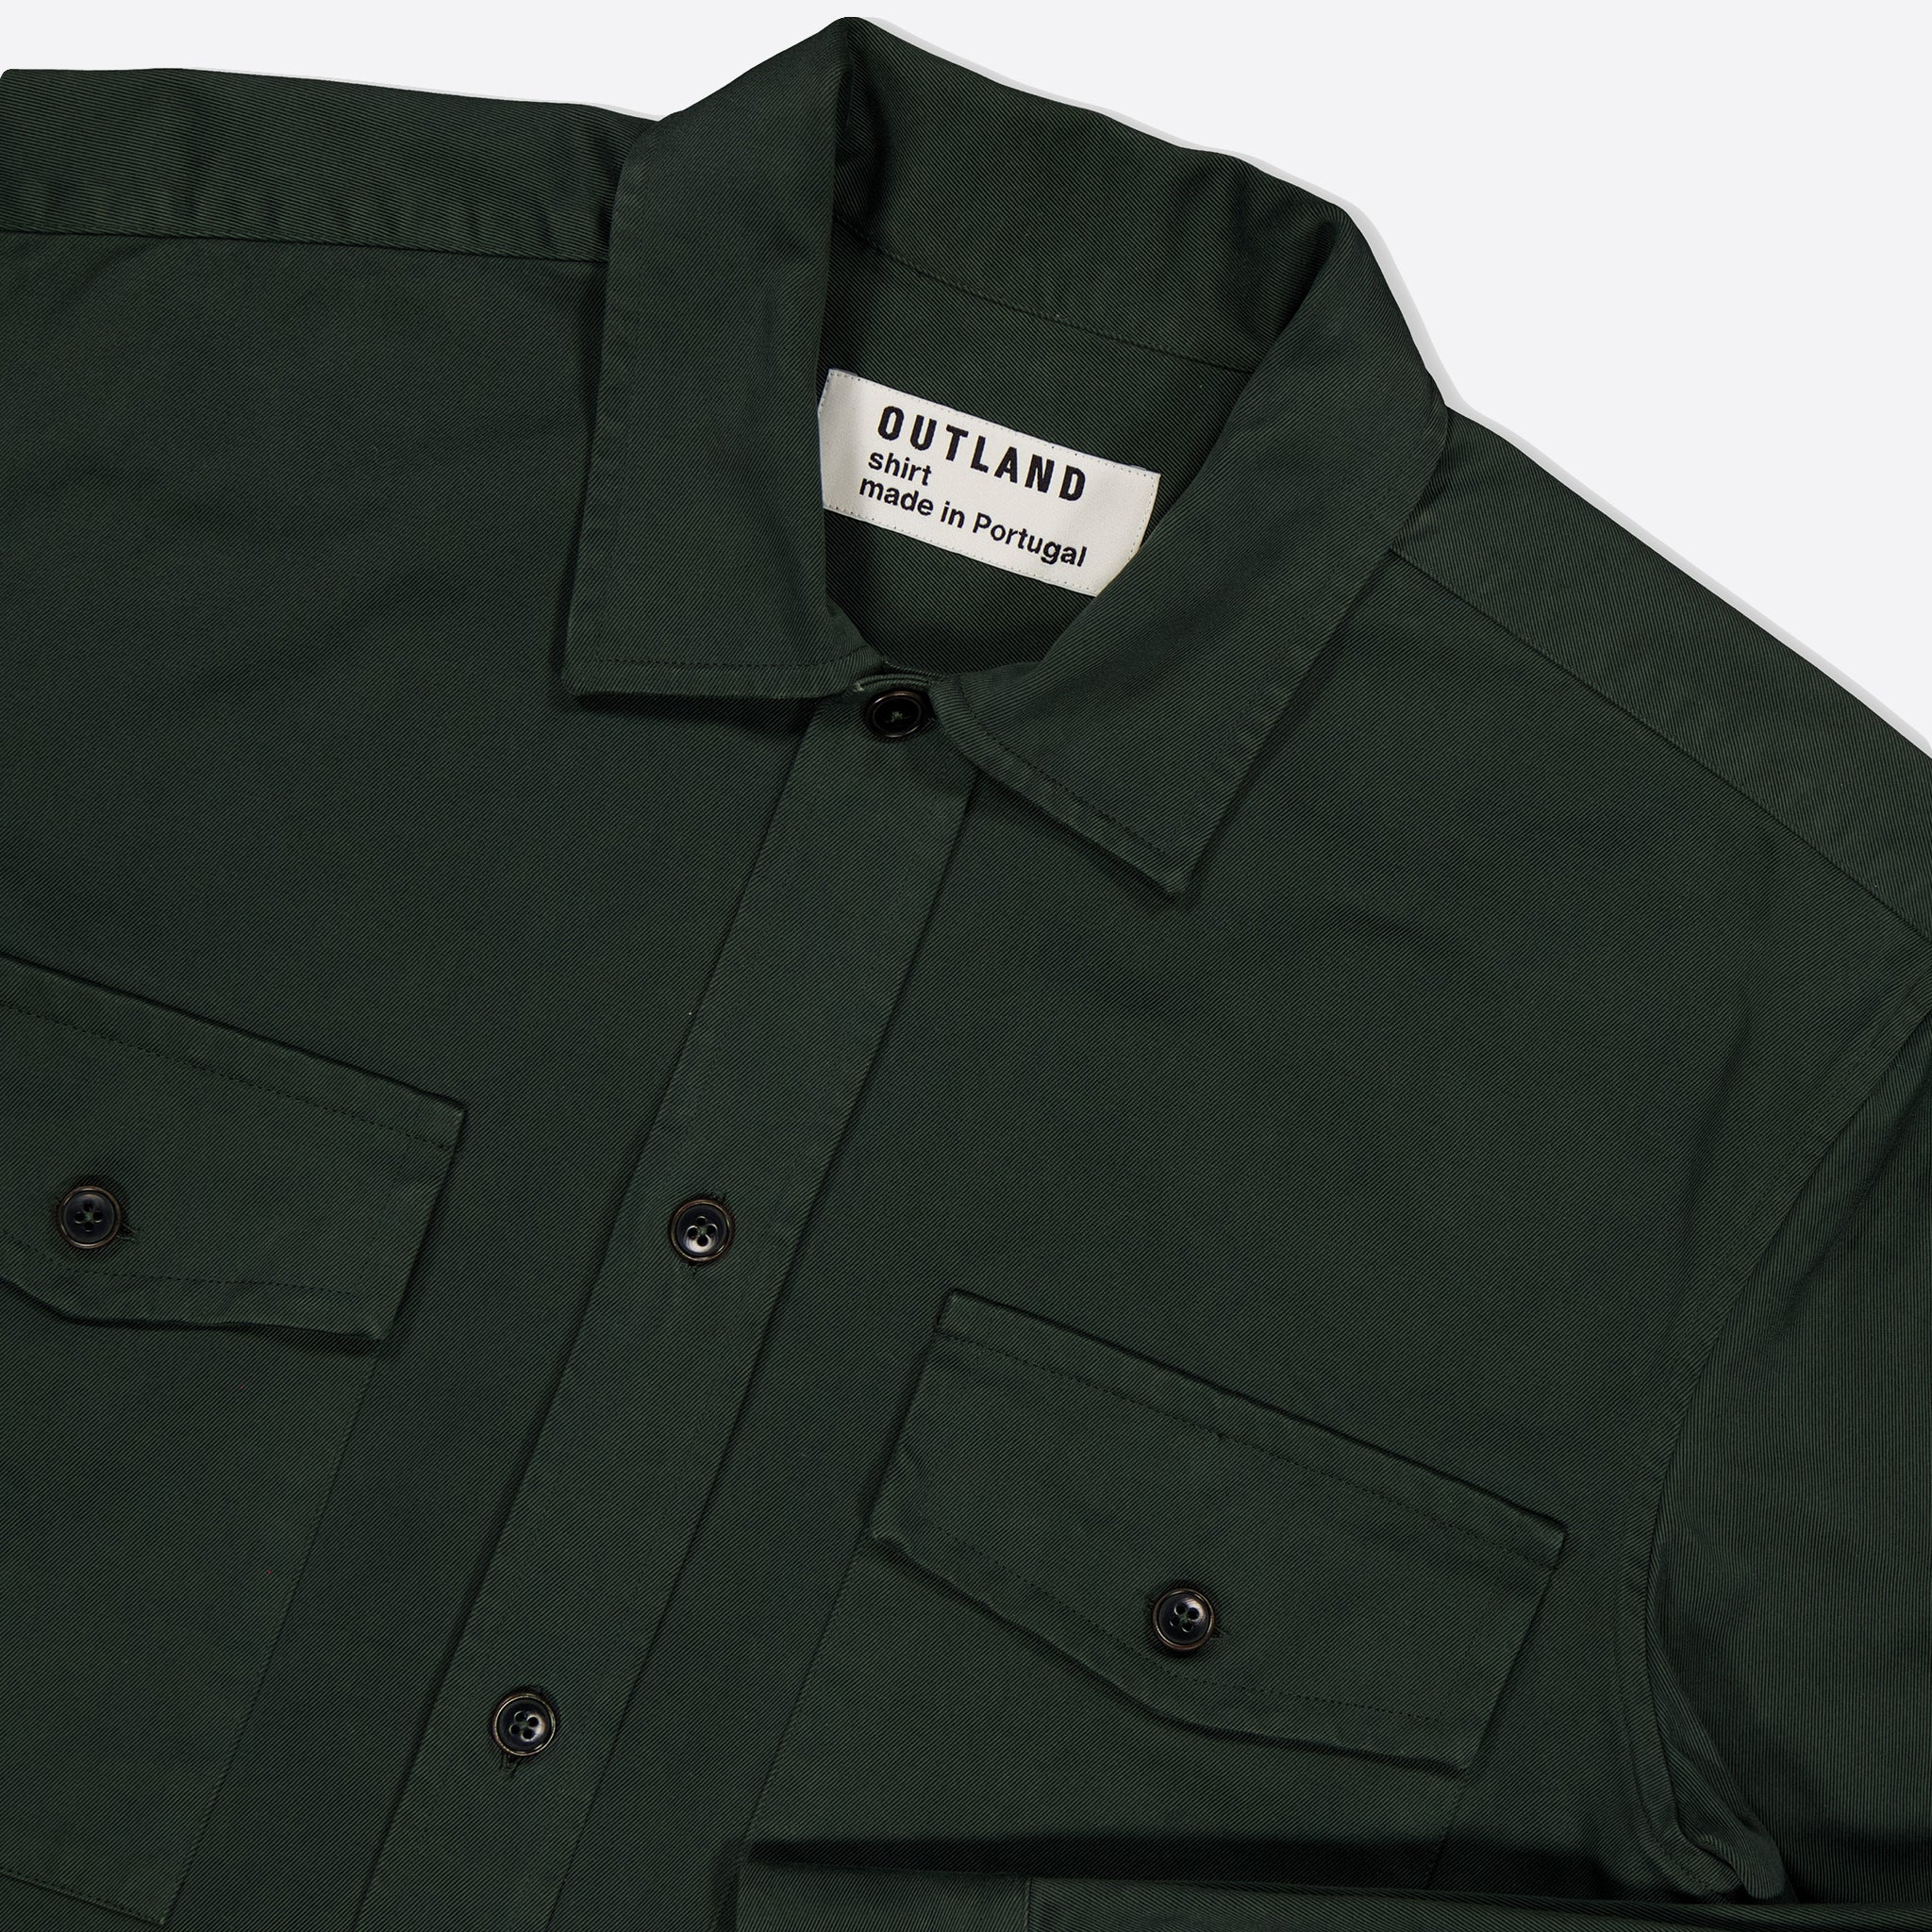 OUTLAND Army Twill Overshirt in Forest Green